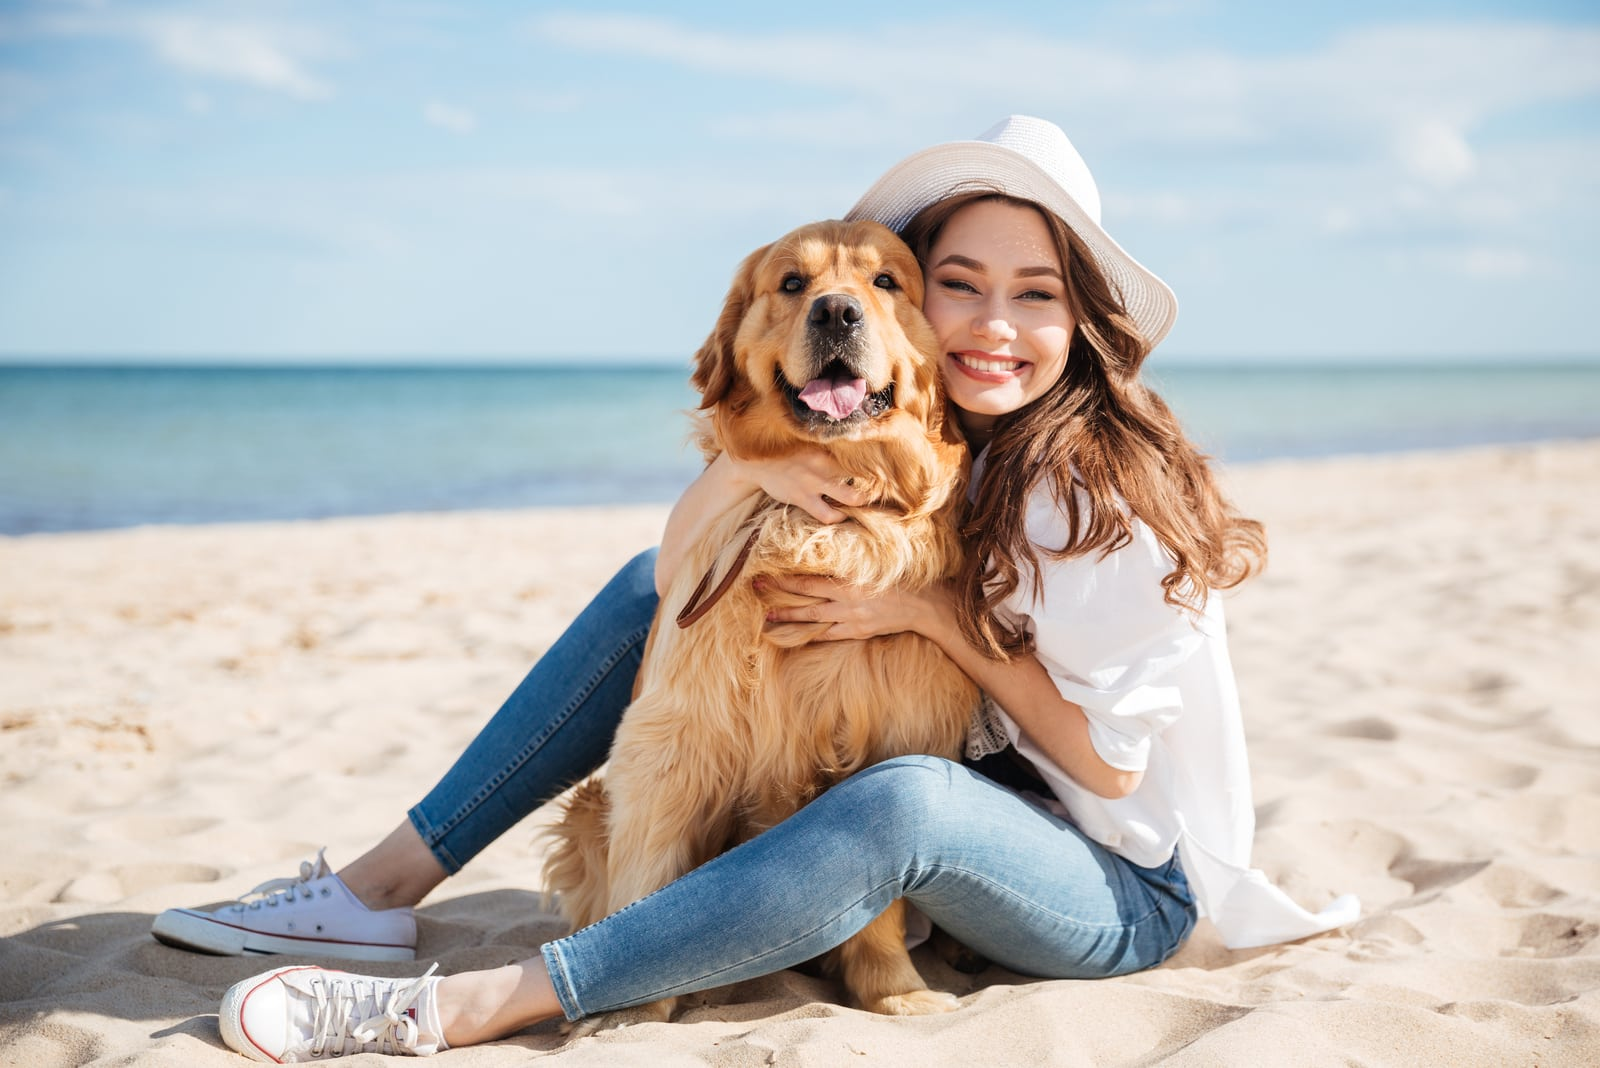 happy woman posing with her dog on the beach